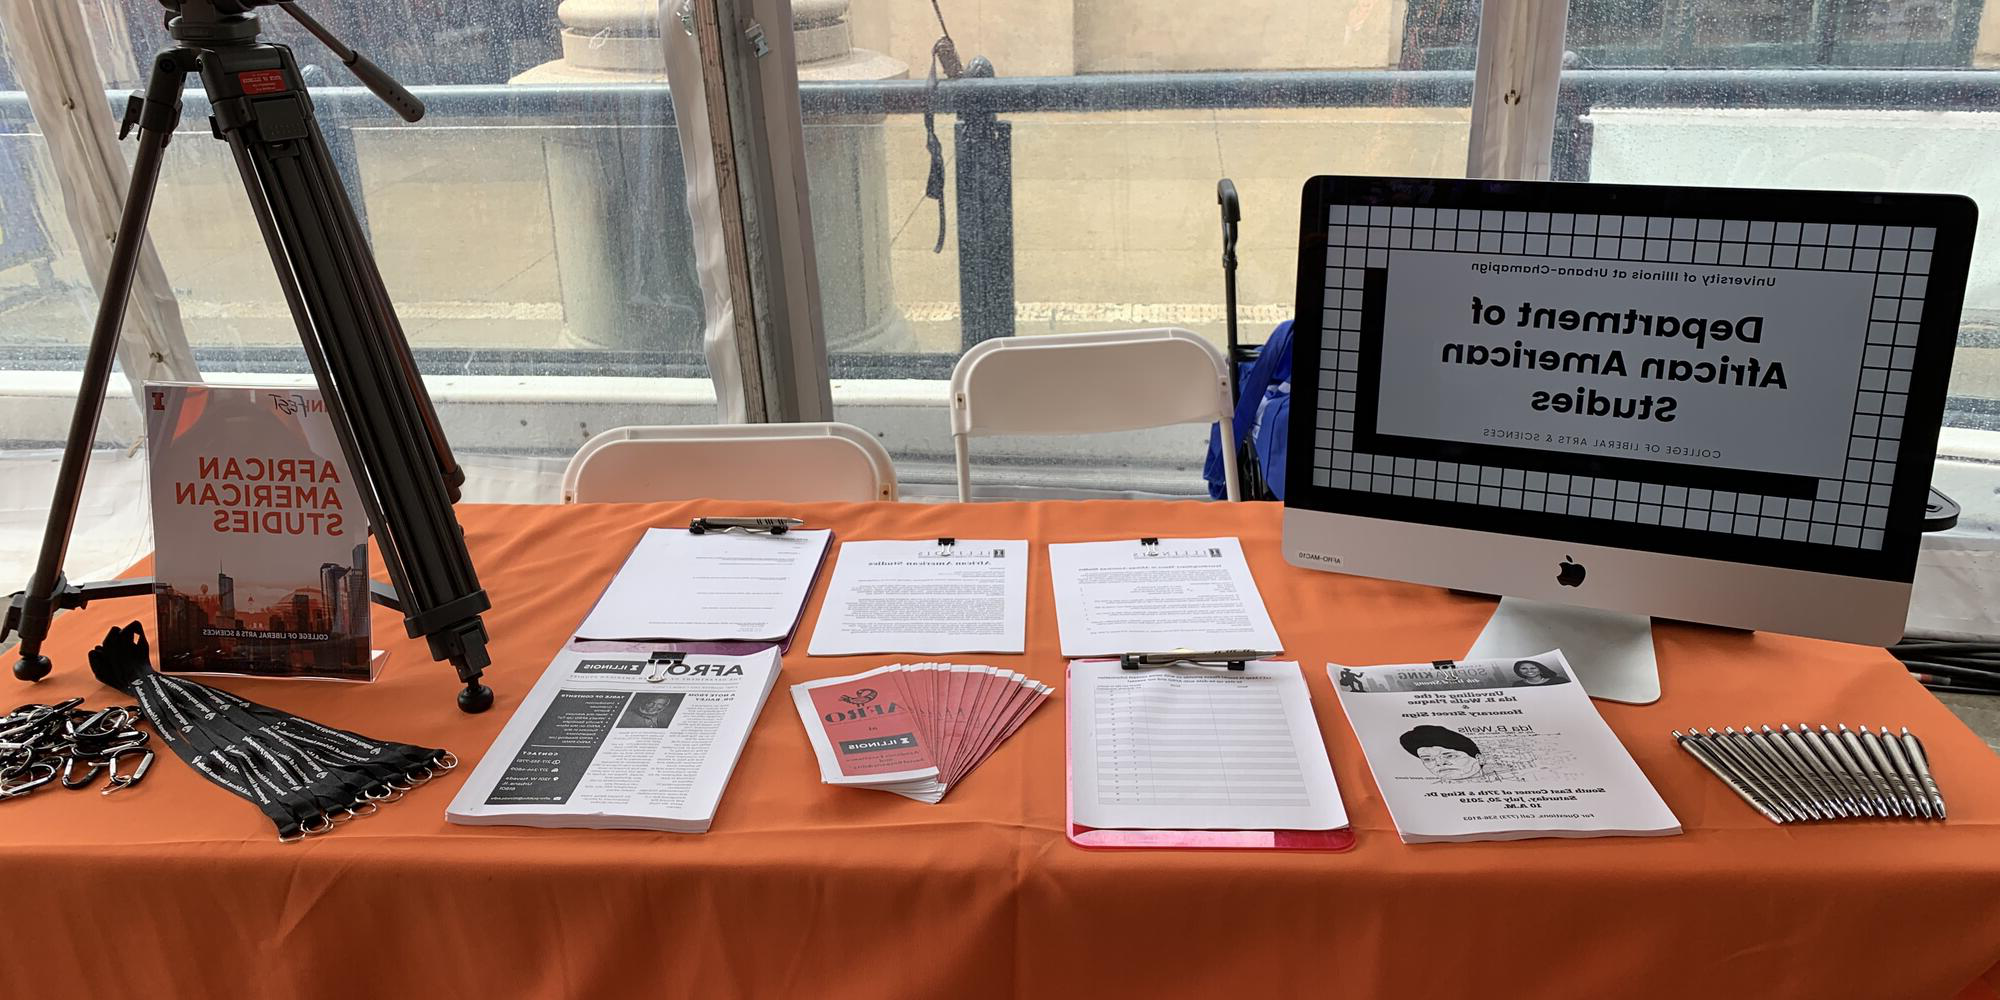 AFRO table setup at Illini Fest with brochures, sign up sheets, and merchandise such as pens, lanyards, and carabiner keychains.